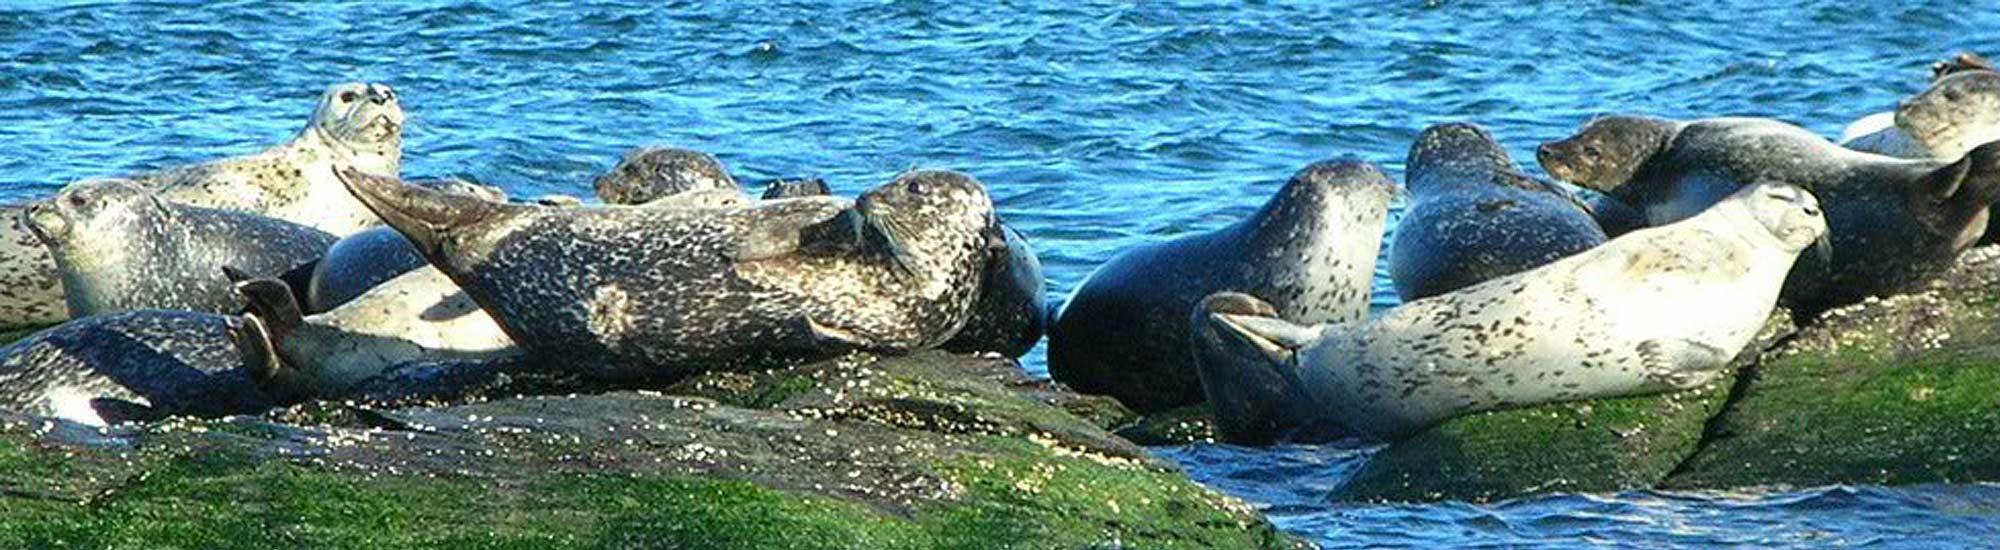 harbor seals enjoying the winter